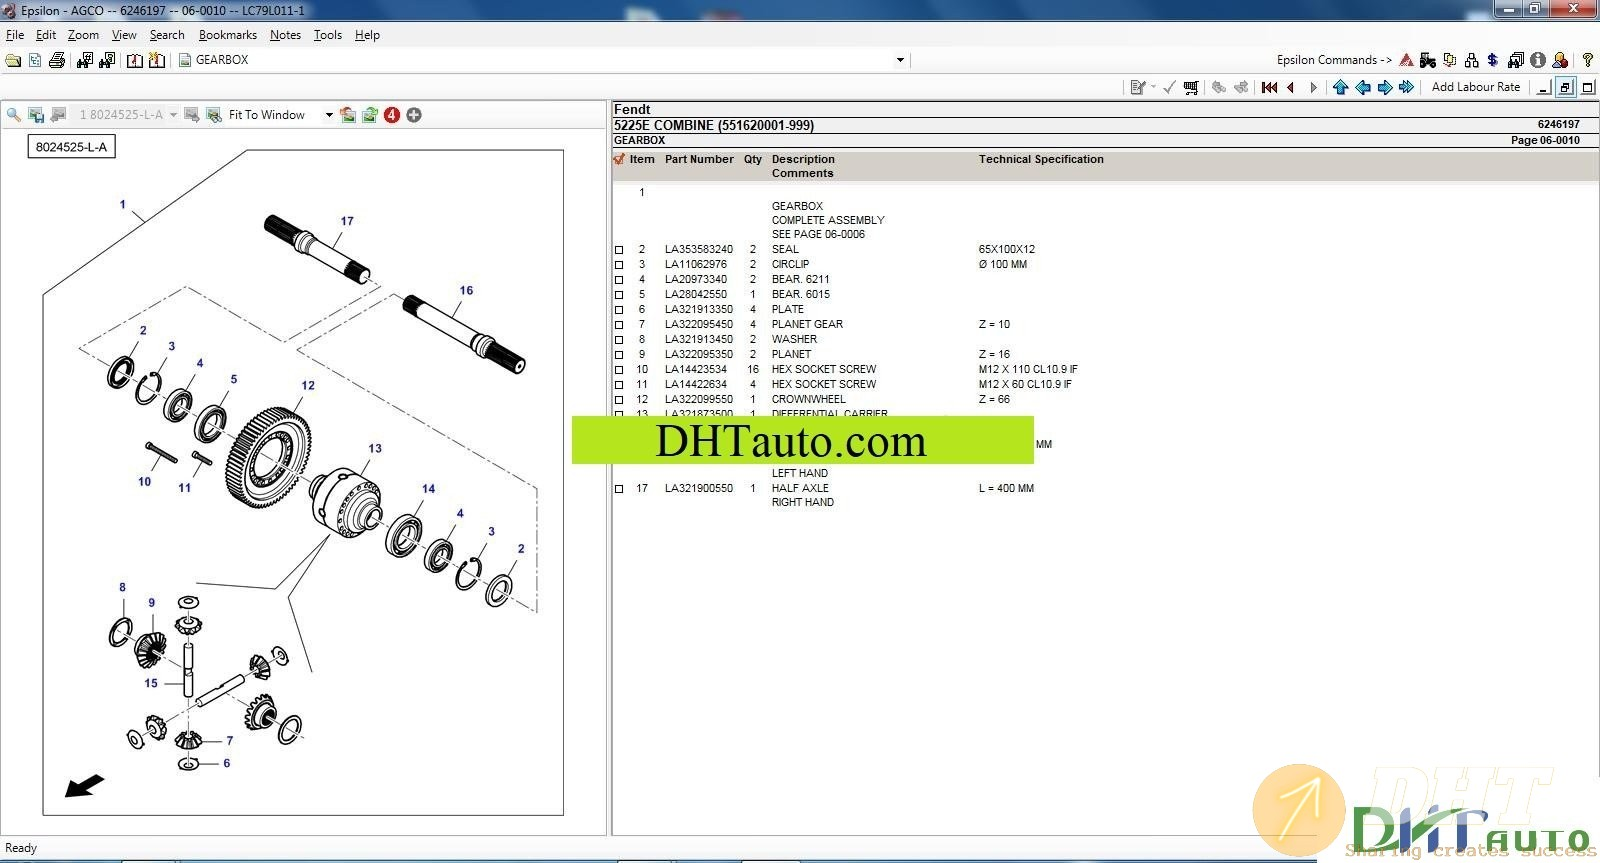 AGCO-Fendt-Parts-Catalogue-NA-Full-Keys-06-2017-4.jpg